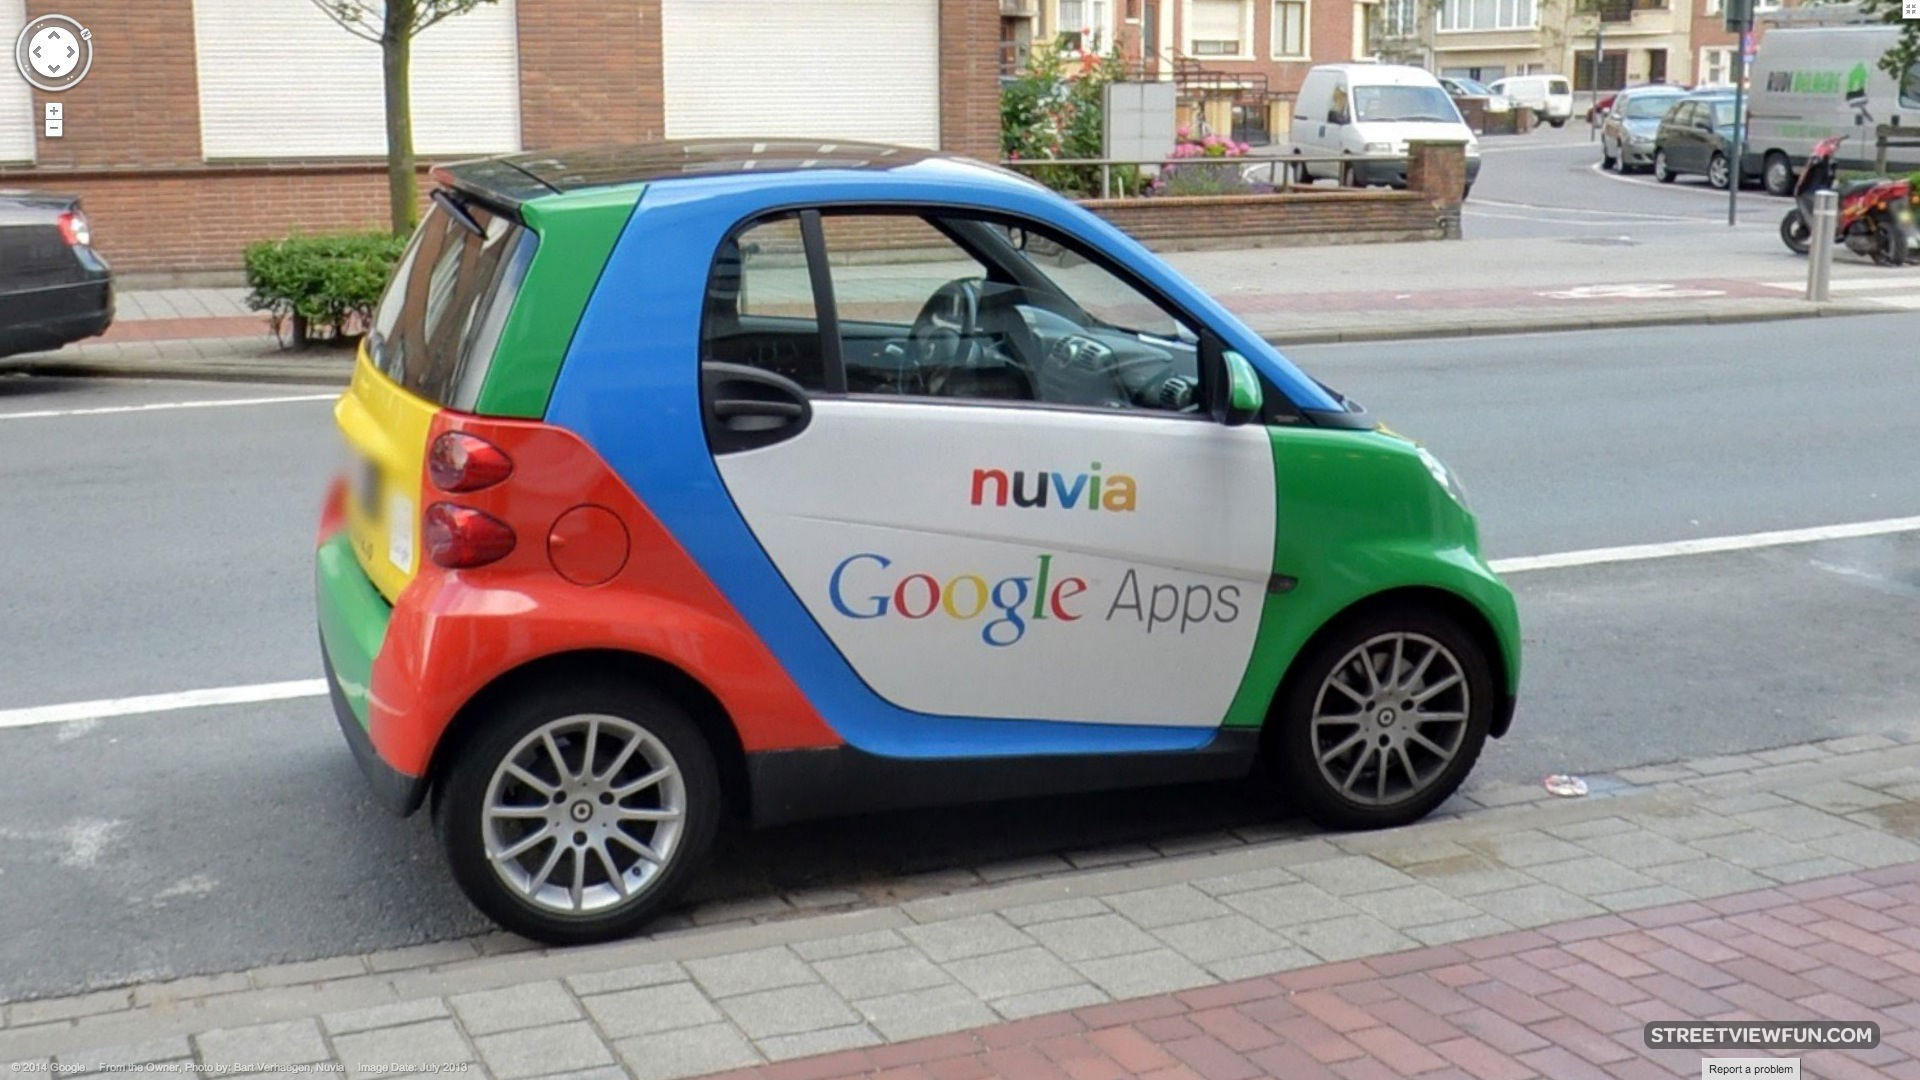 google car We are on the cusp of a world where self-driving cars are a reality for everyday users in this article we focus on google's driverless car prototype and explore how this technology actually works, and if it's safe.